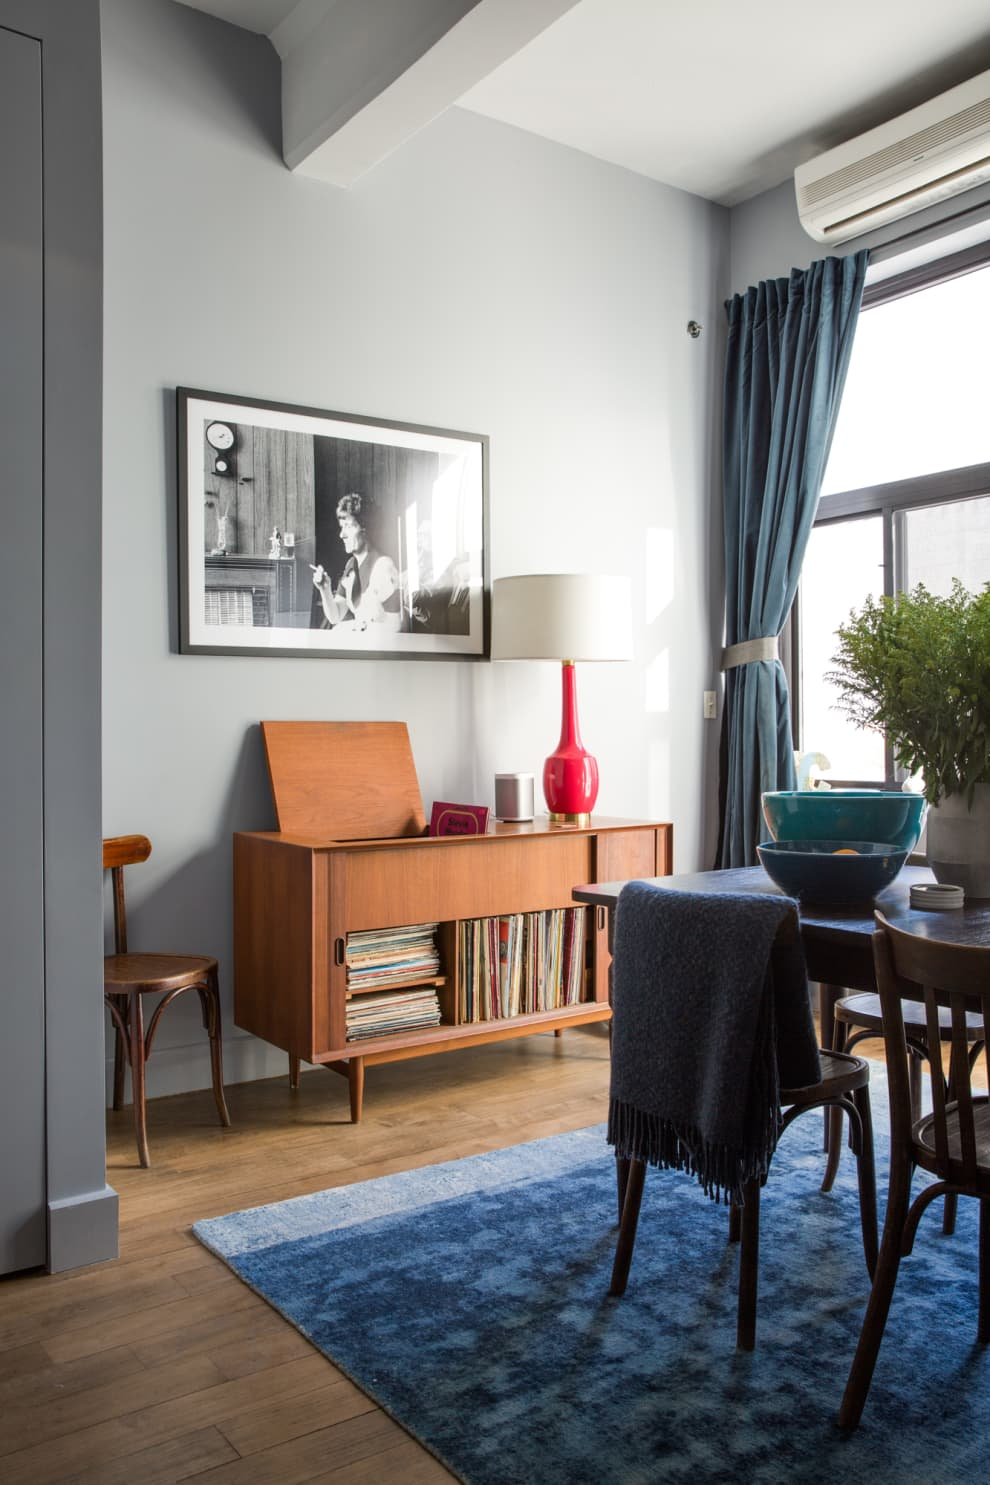 RePOP Interior featured in Apartment Therapy